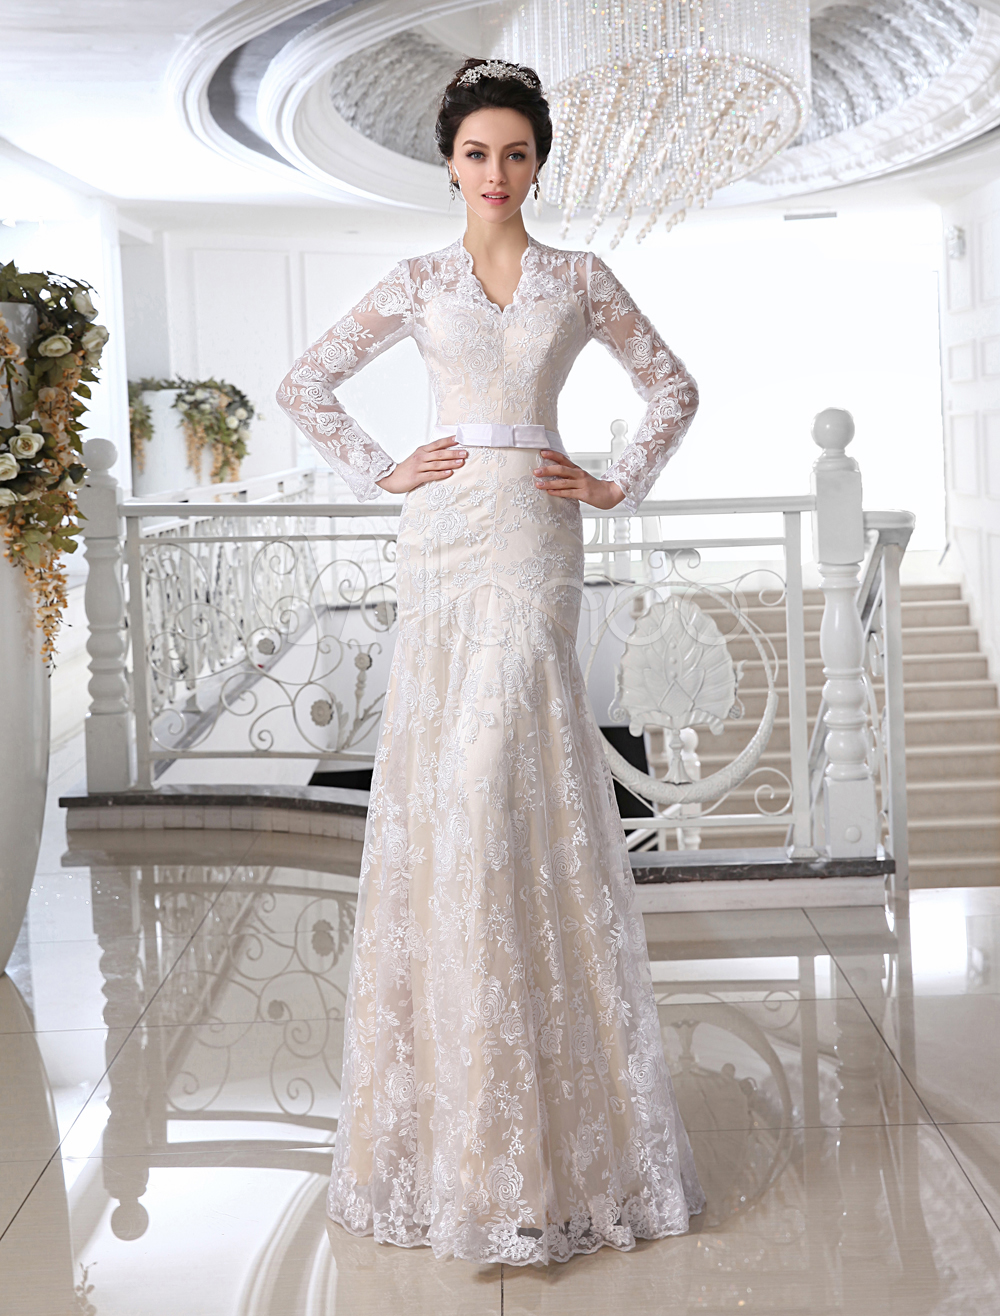 Wedding Dresses Lace Champagne Bridal Dress V Neck Long Sleeve Illusion Sheath Bow Sash Floor Length Wedding Gown